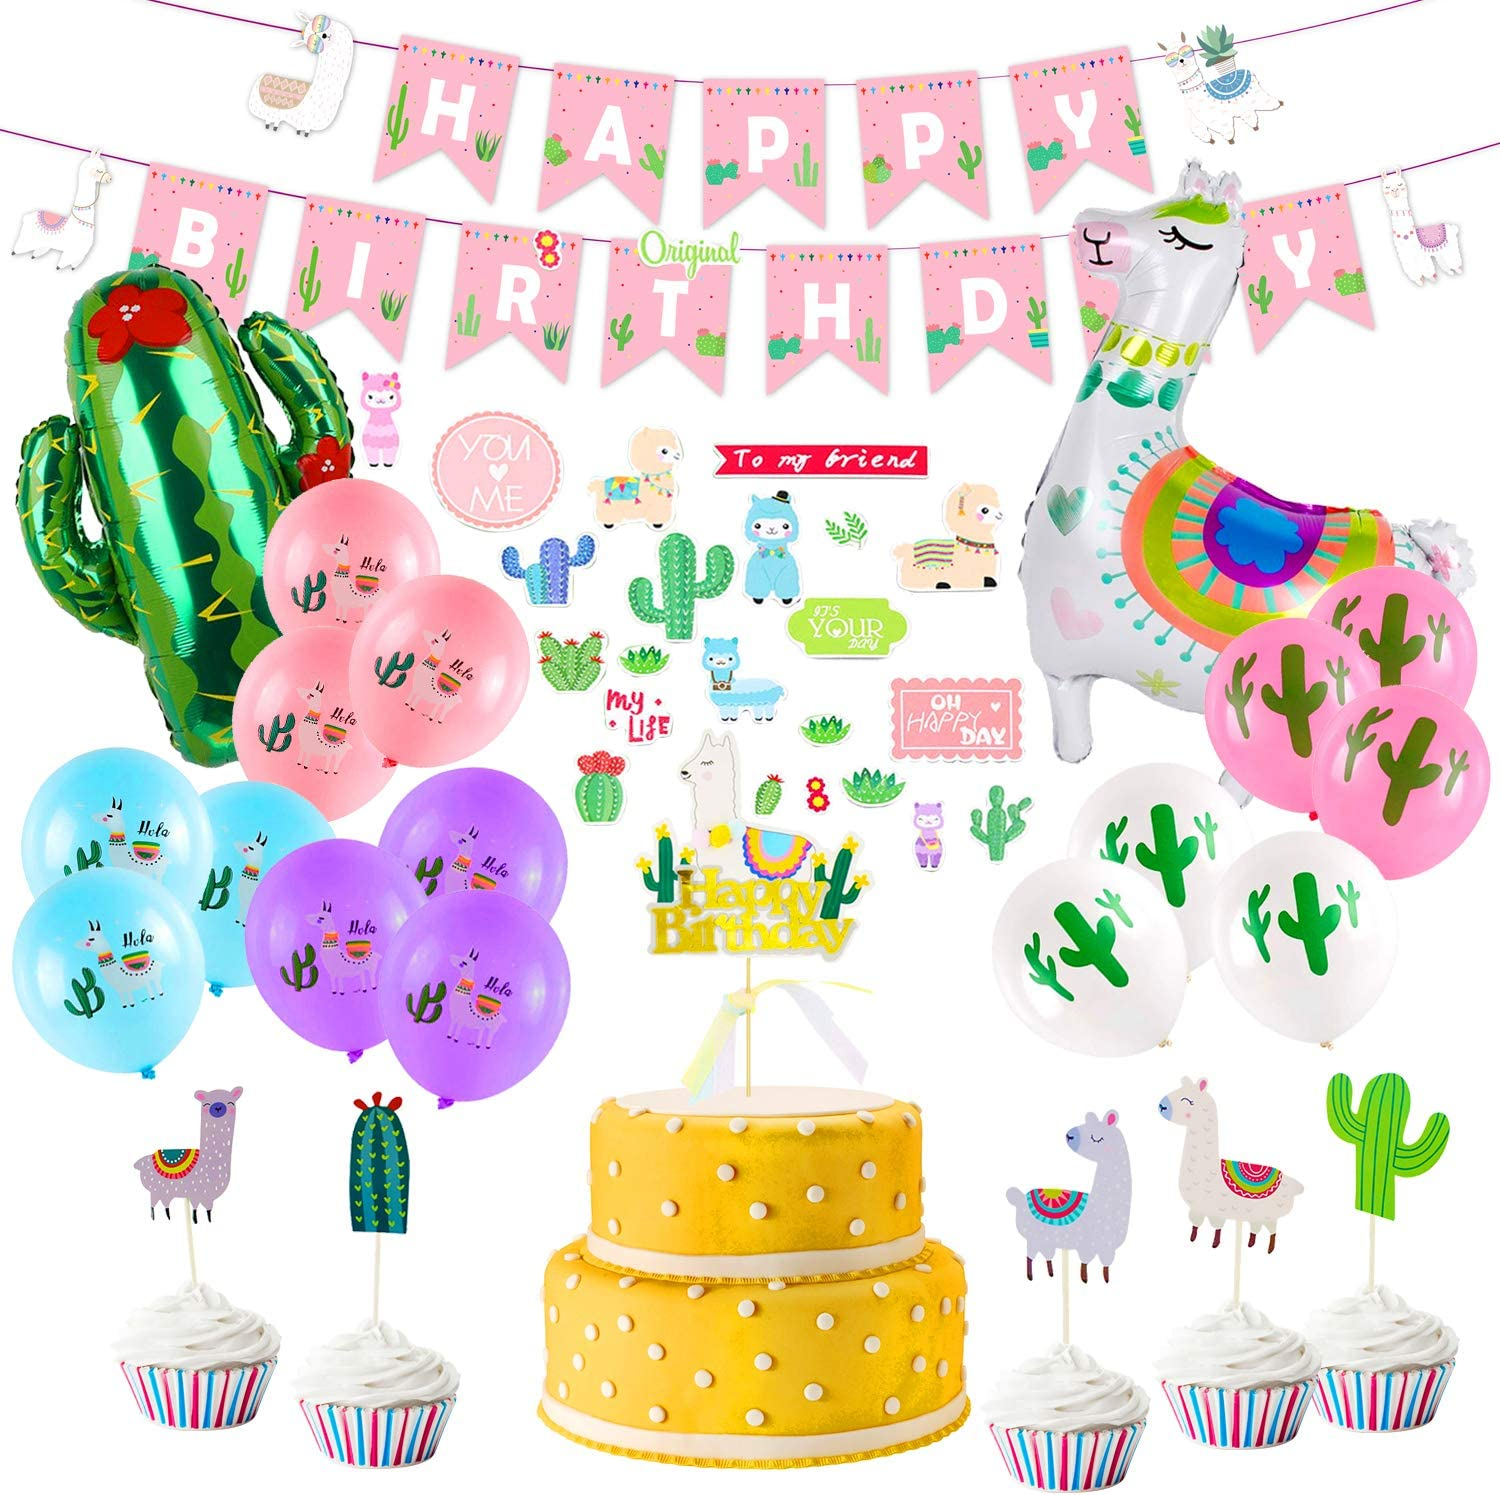 Llama Birthday Party Supplies, Birthday Party Decorations for Girls Kids,  Llama Party Decorations with Happy Birthday Banner, Large Llama Cactus Foil